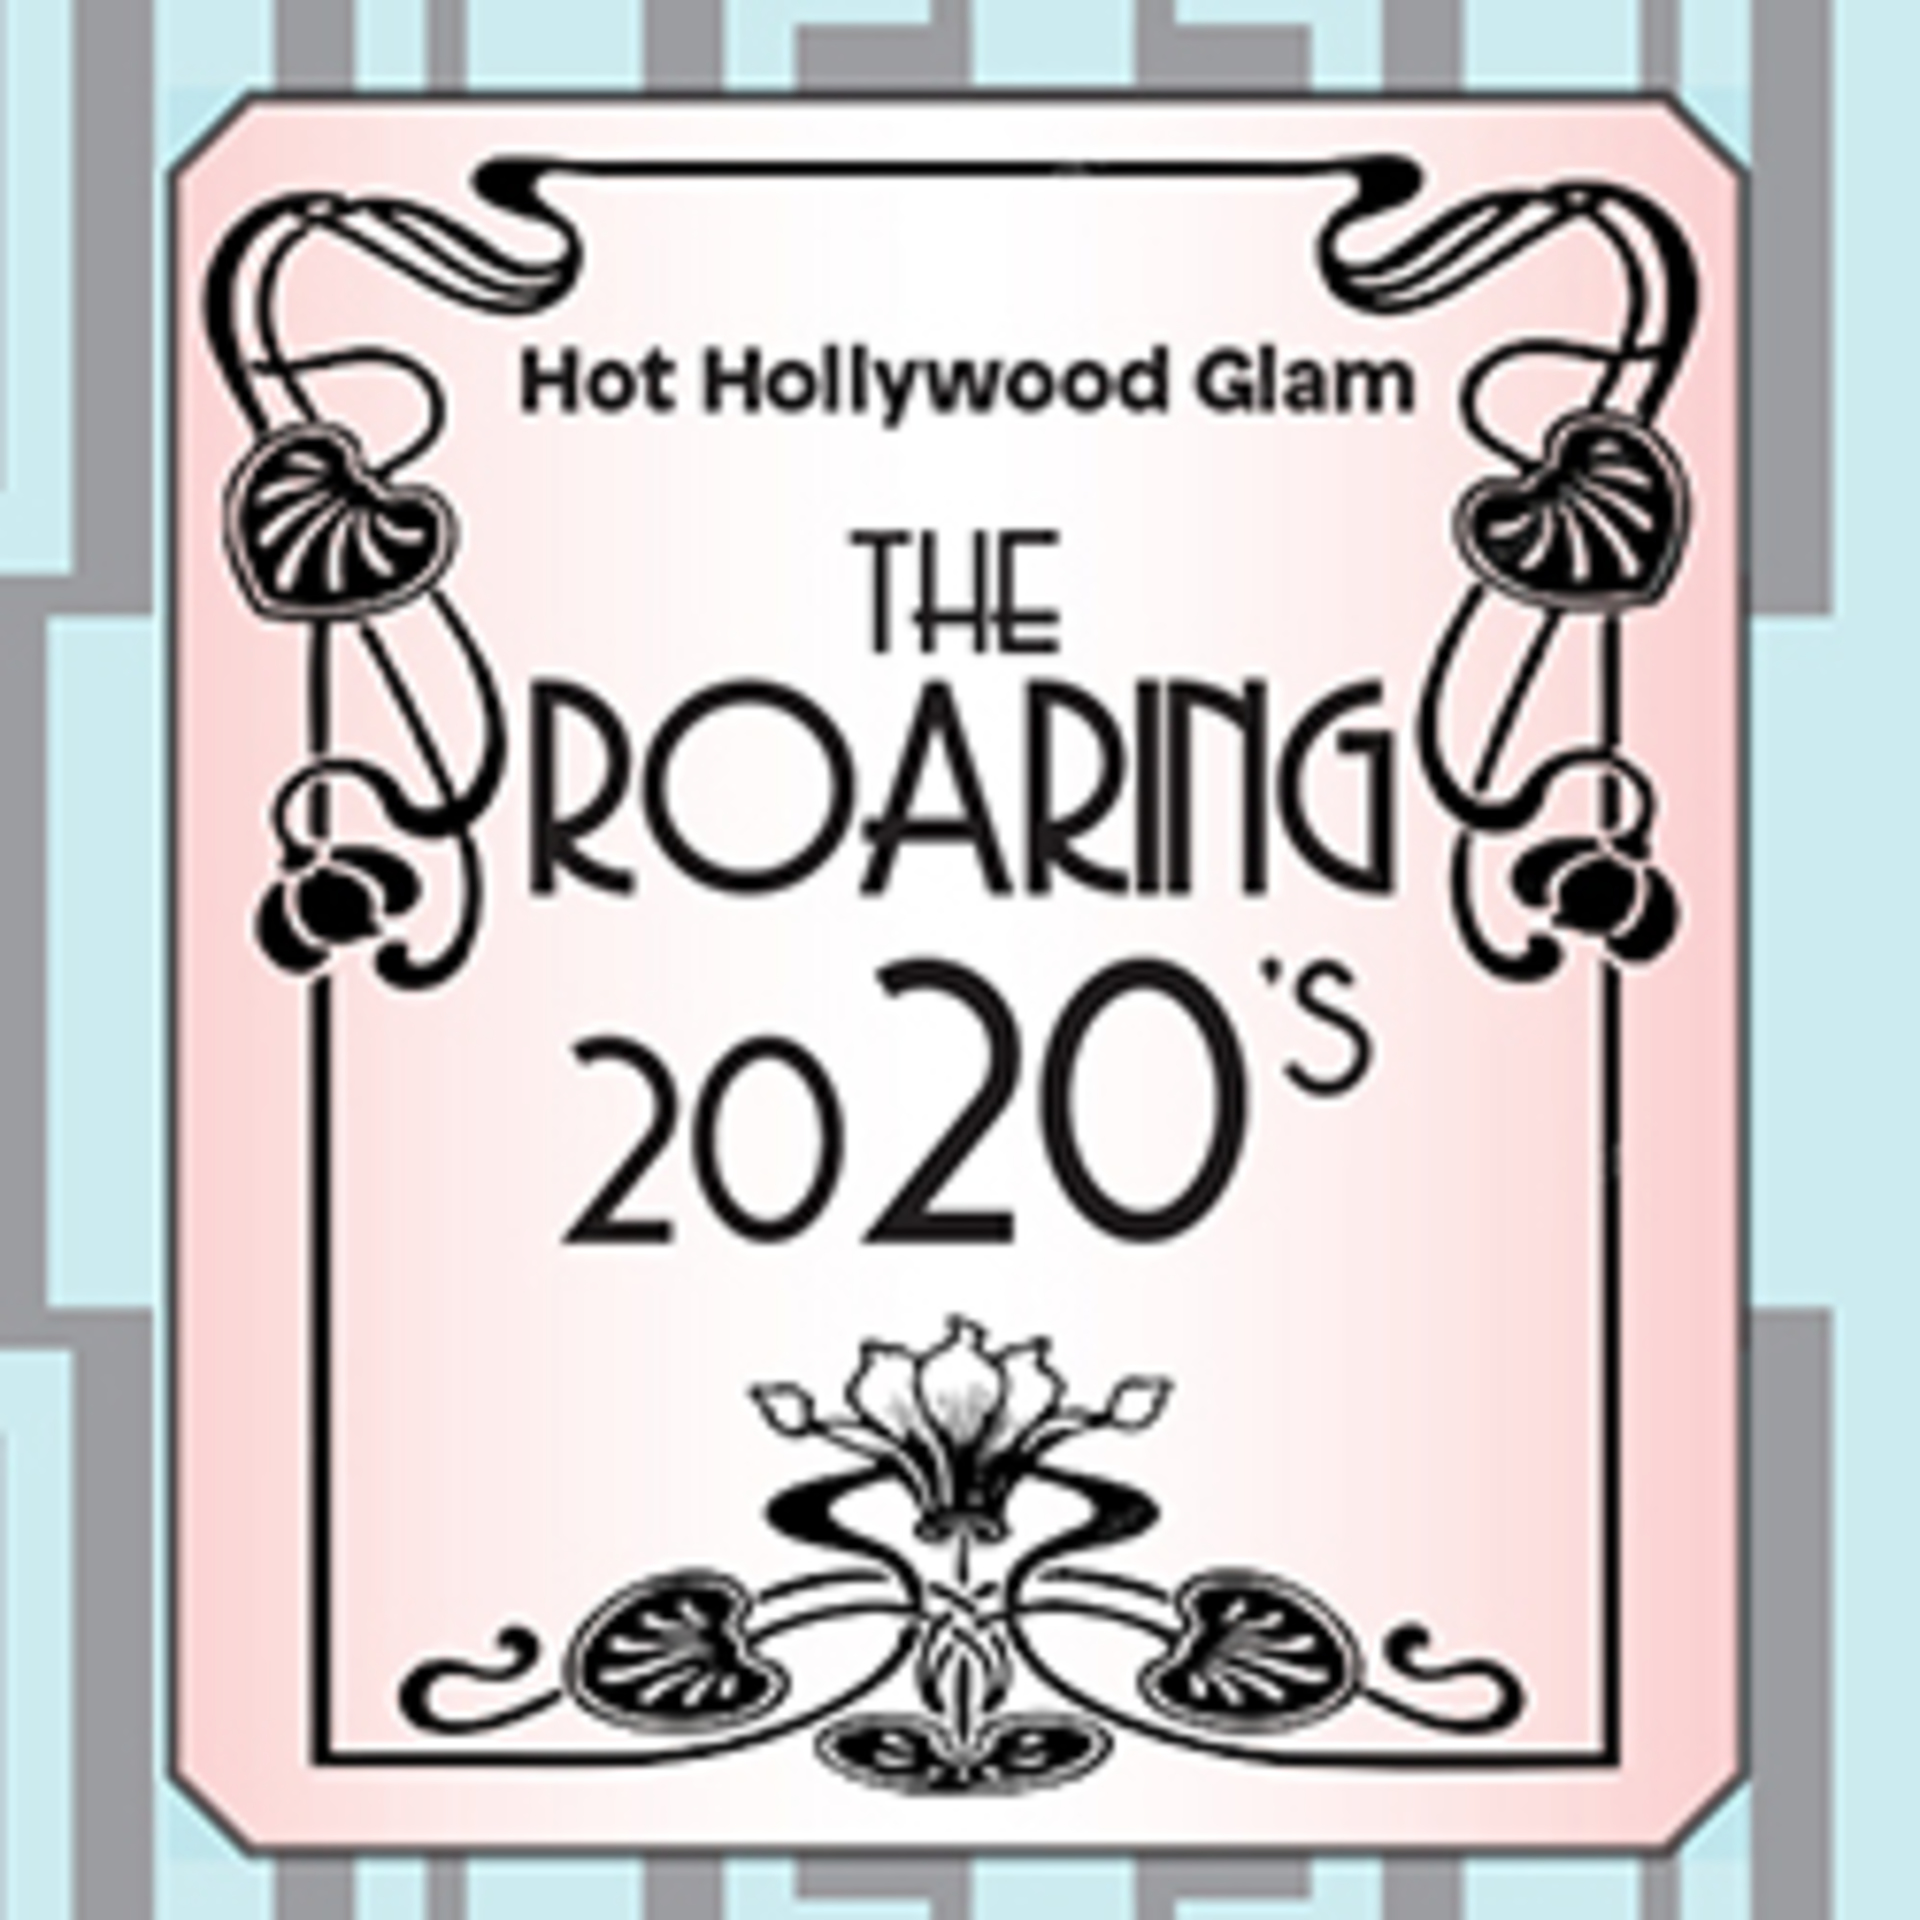 Hot Hollywood Glam - The Roaring 2020\'s